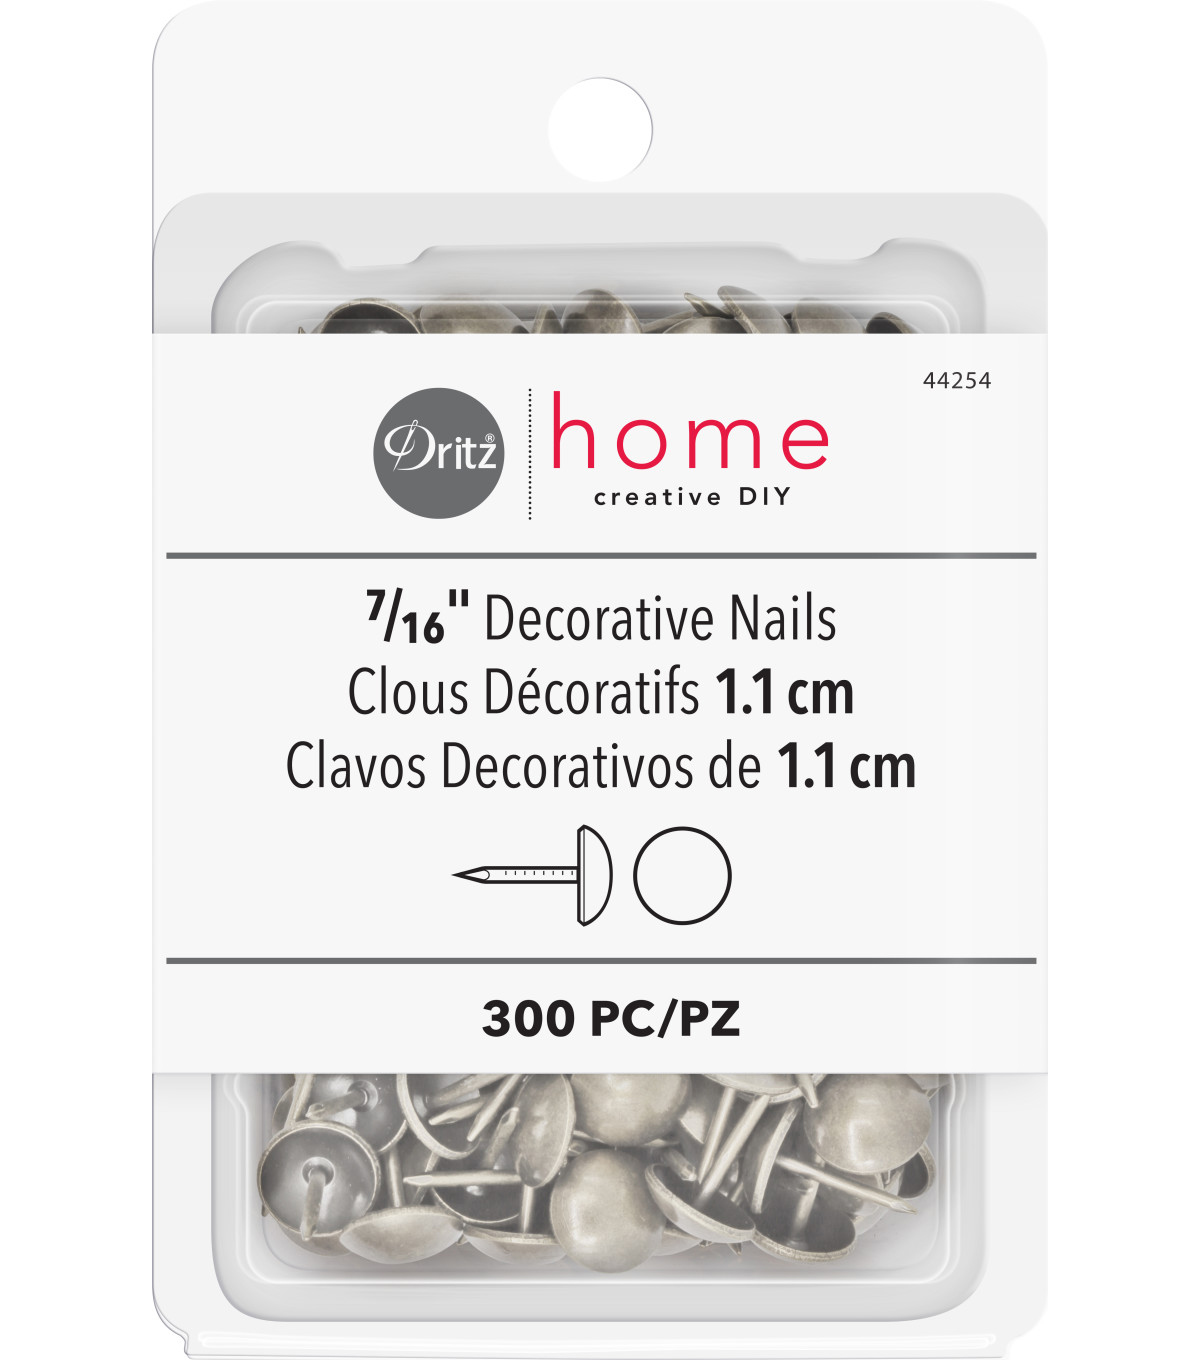 Dritz Home 300pk Decorative Nails-Brushed Silver